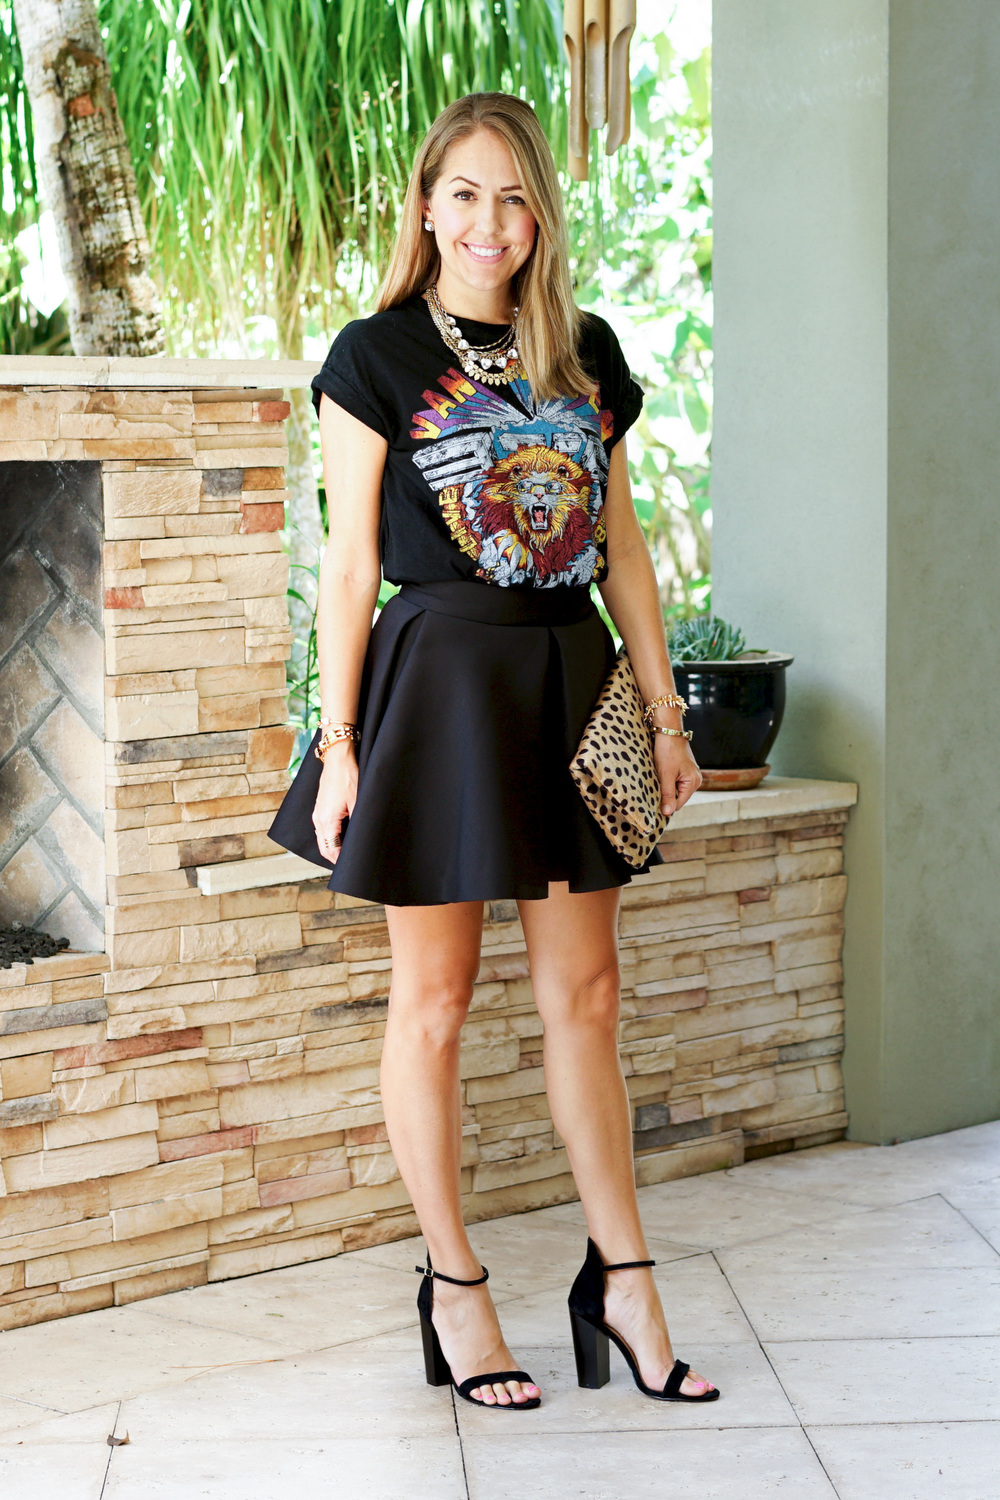 Graphic tee, skater skirt, leopard clutch, block heels